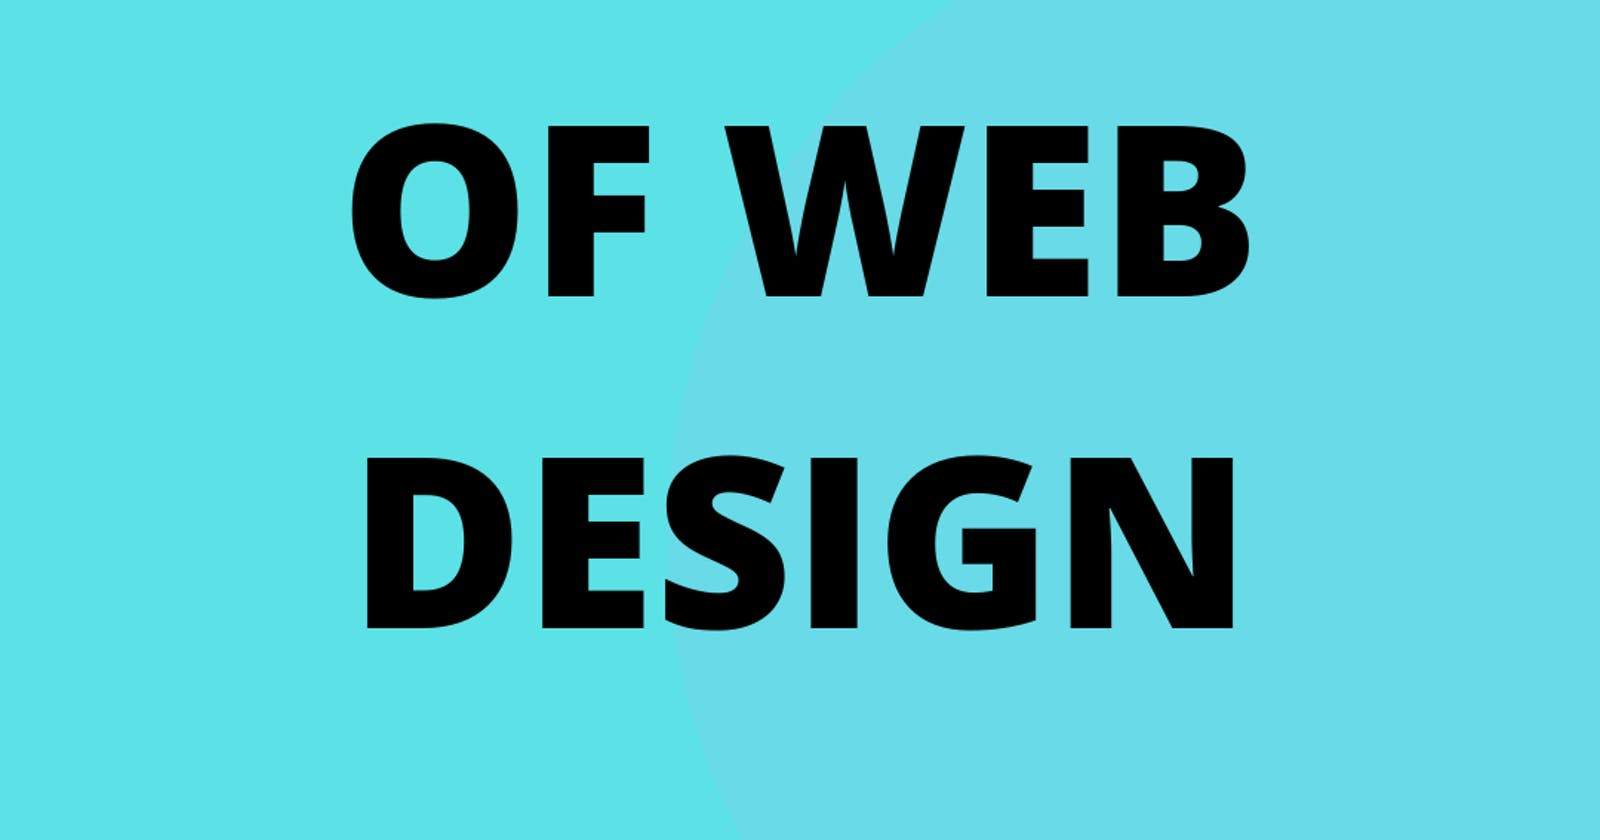 What I learned from 30 days of Web Design